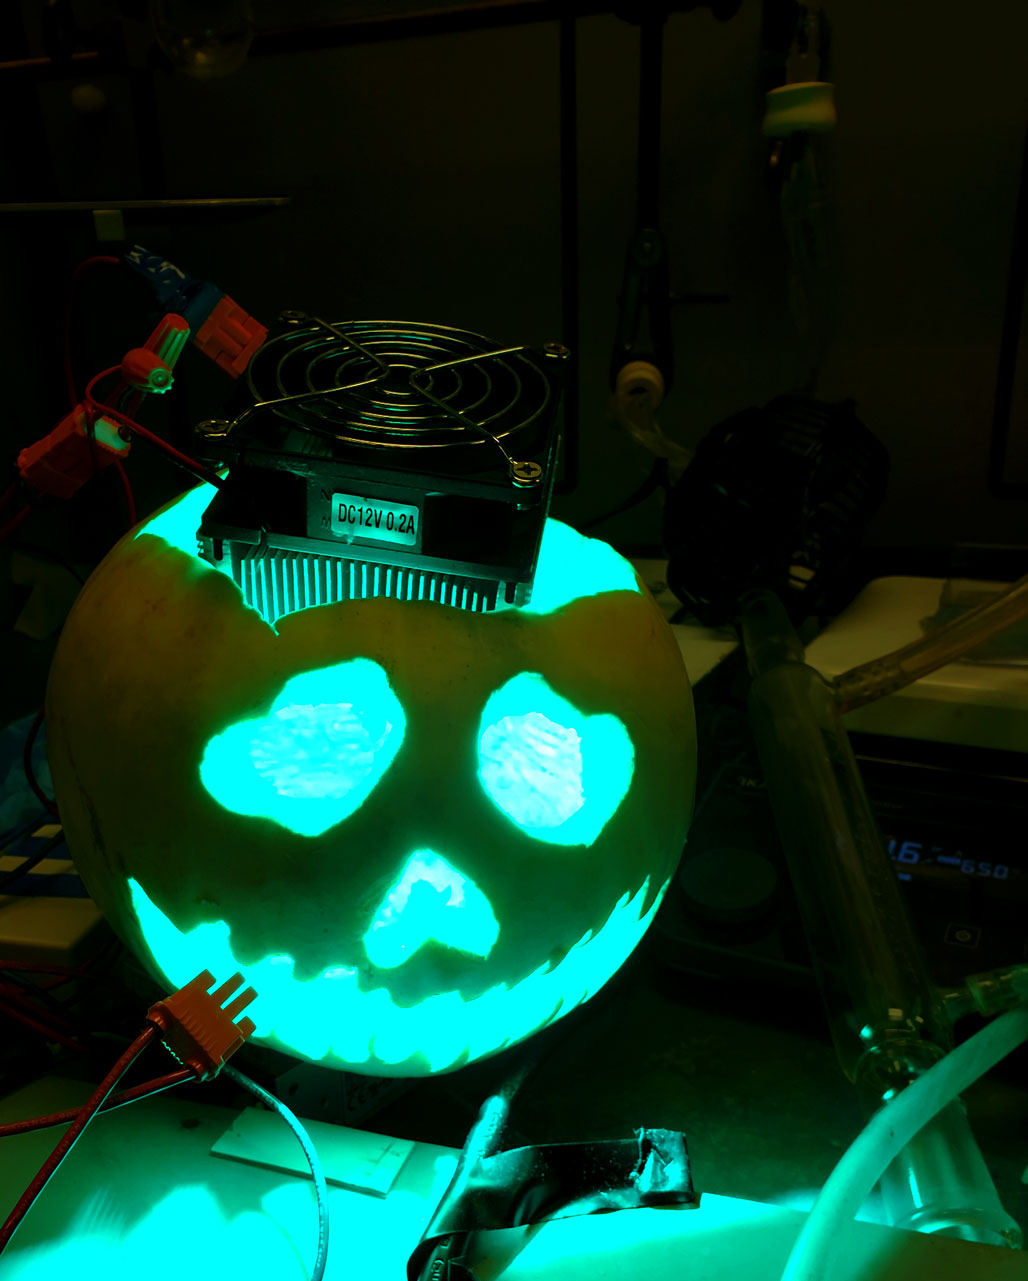 Lab pumpkin 2k18